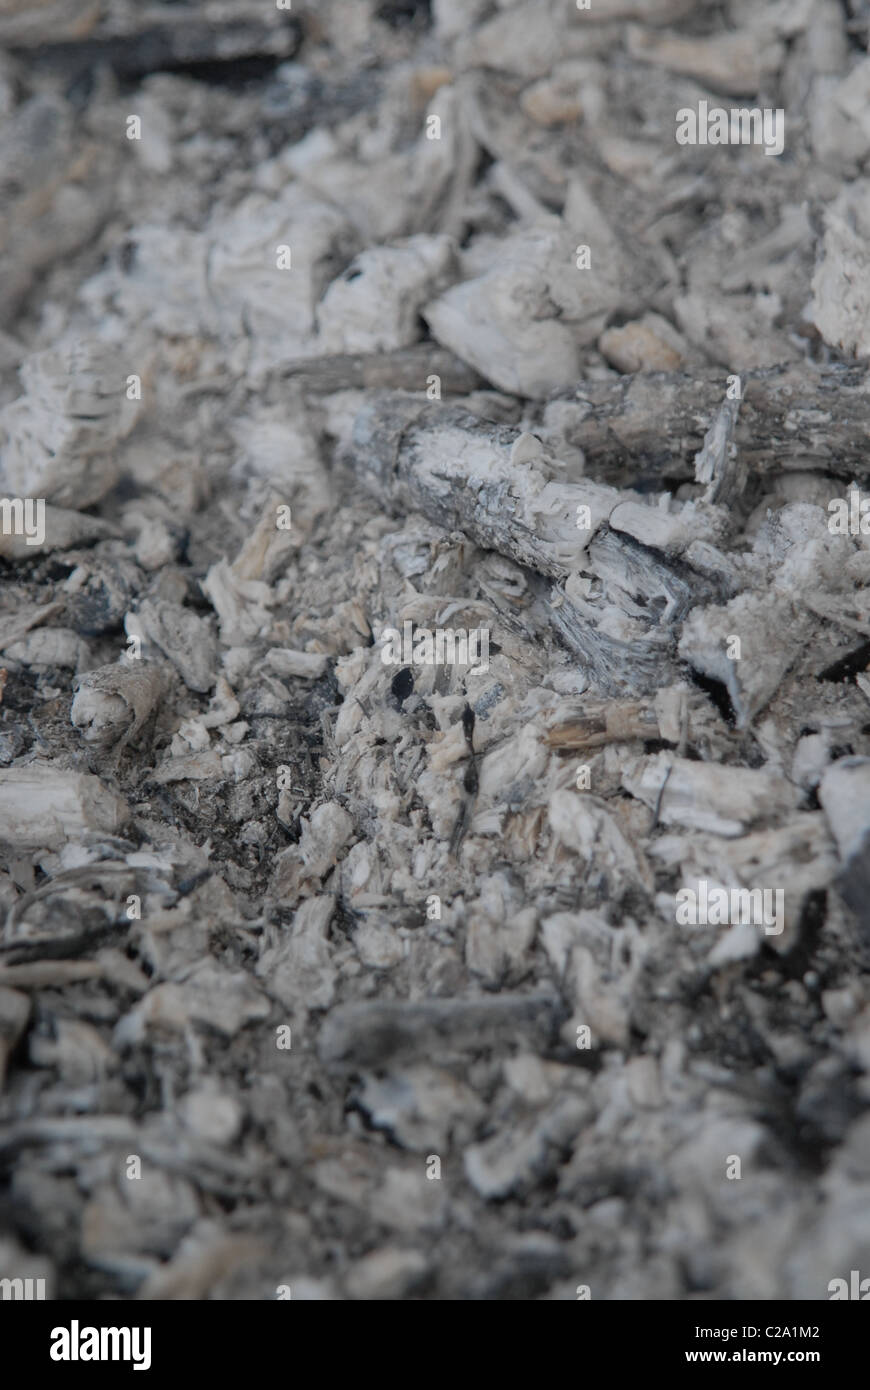 Wood ash, residue powder left after the combustion of wood. - Stock Image